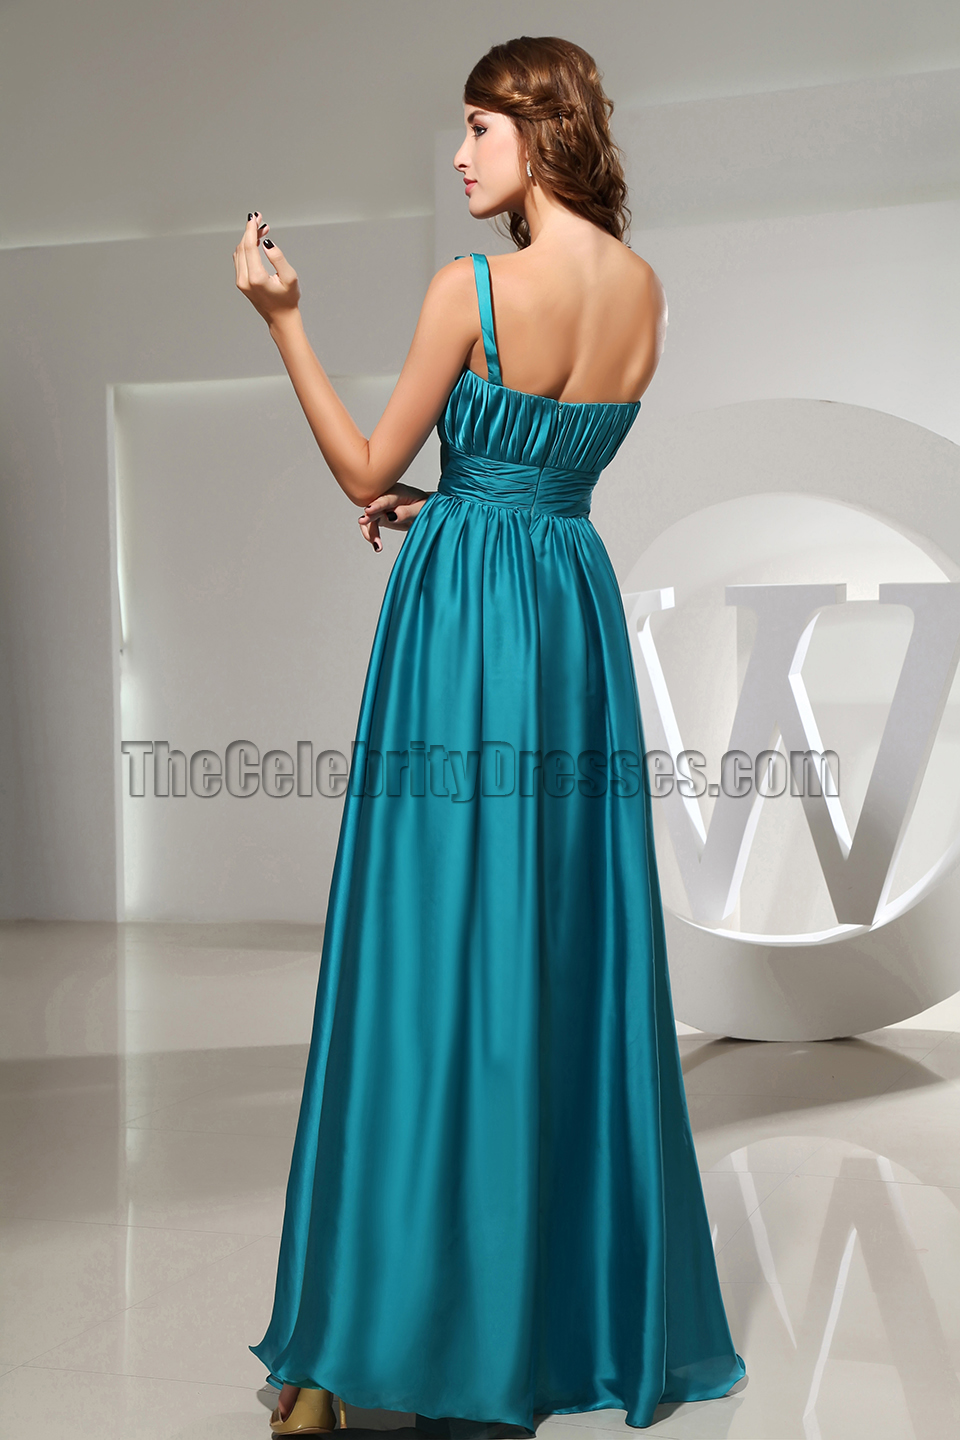 Discount long one shoulder bridesmaid evening dresses discount long one shoulder bridesmaid evening dresses thecelebritydresses ombrellifo Image collections